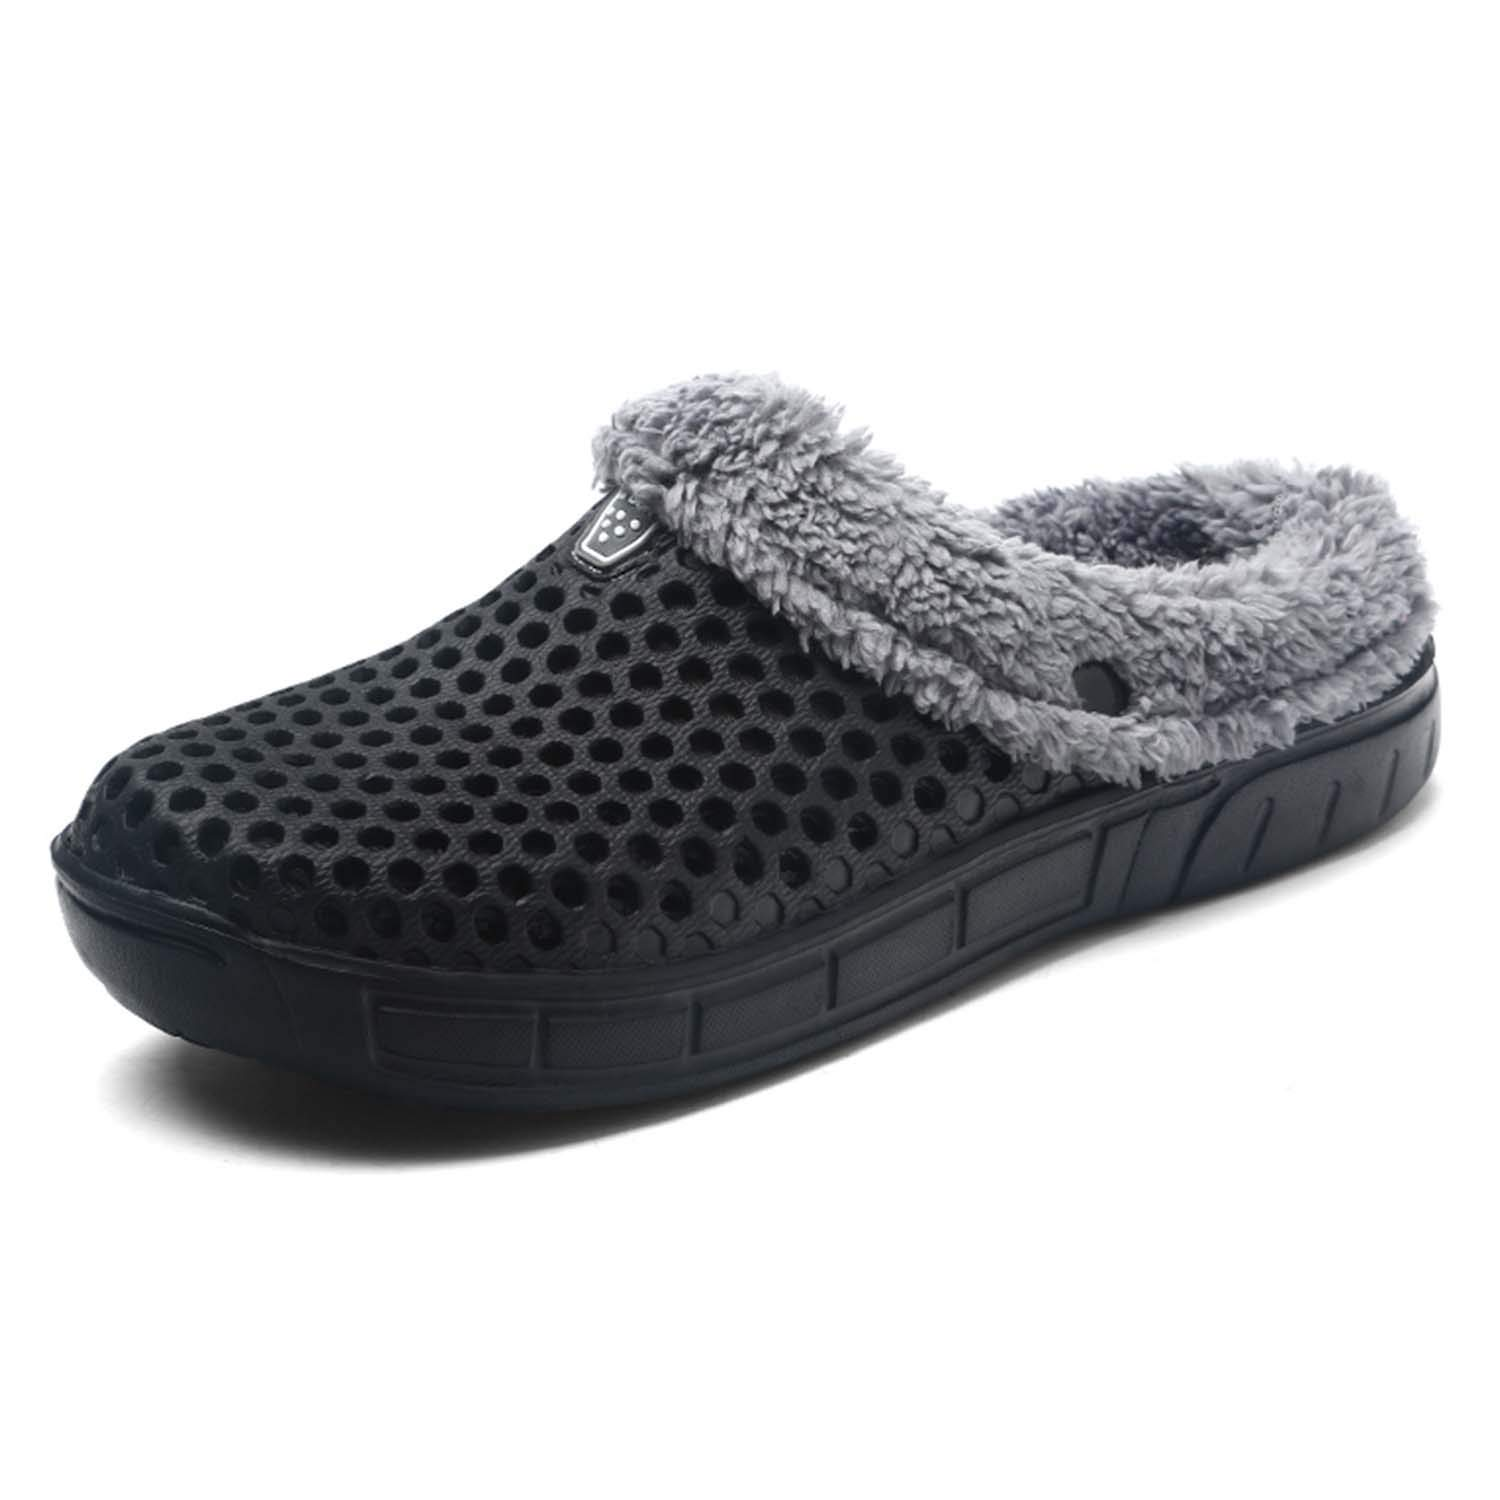 HMAIBO Unisex Fur Lined Clogs House Slippers Winter Breathable Indoor Outdoor Walking Garden Shoes Warm Non-Slip Mule Footwear Black 43